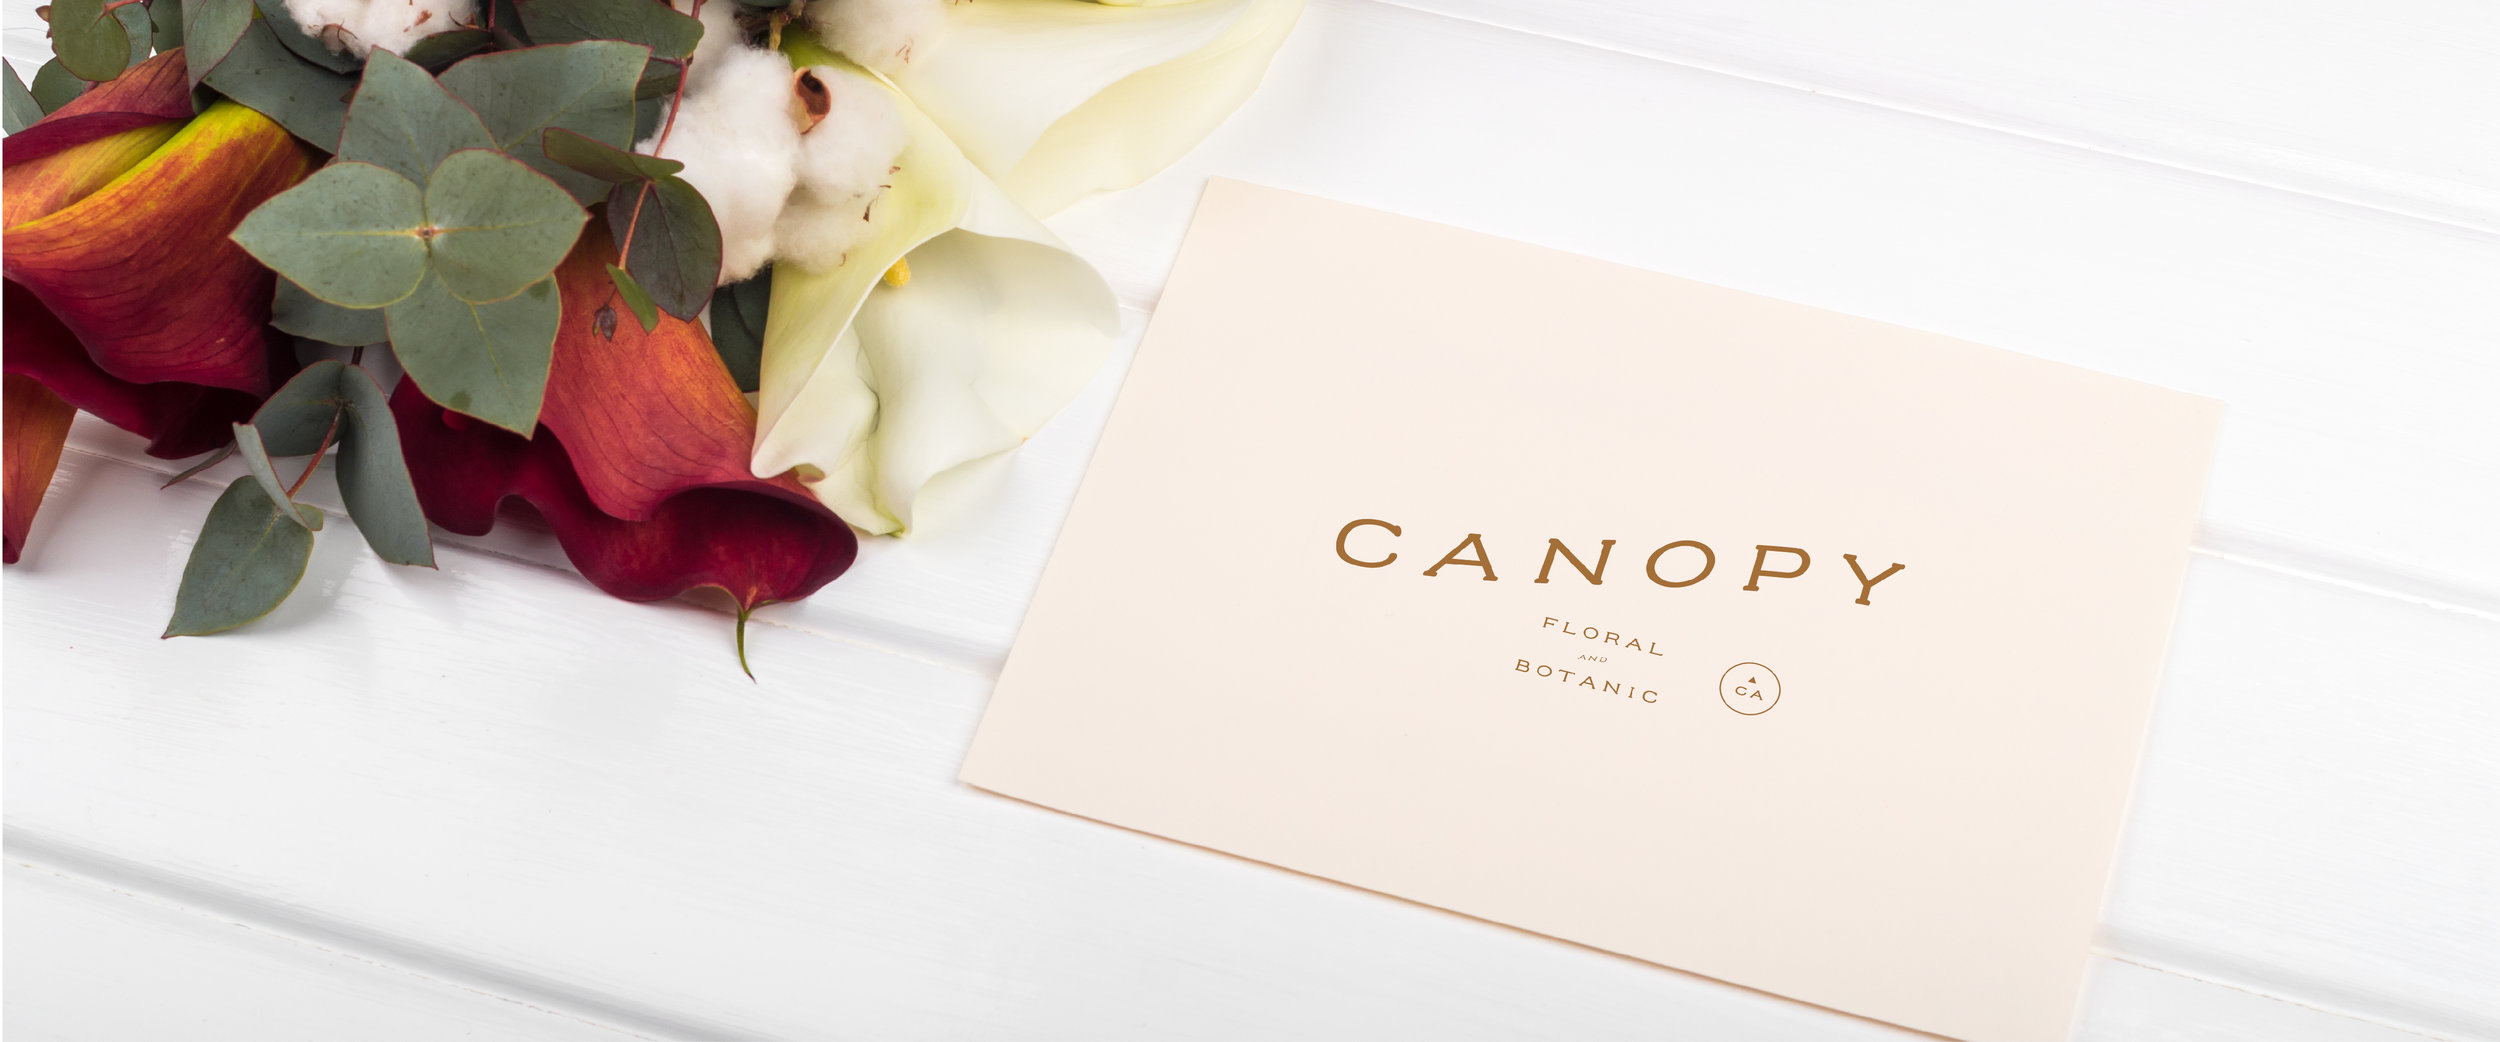 Canopy Floral and Botanic Custom Brand Design by Viola Hill Studio